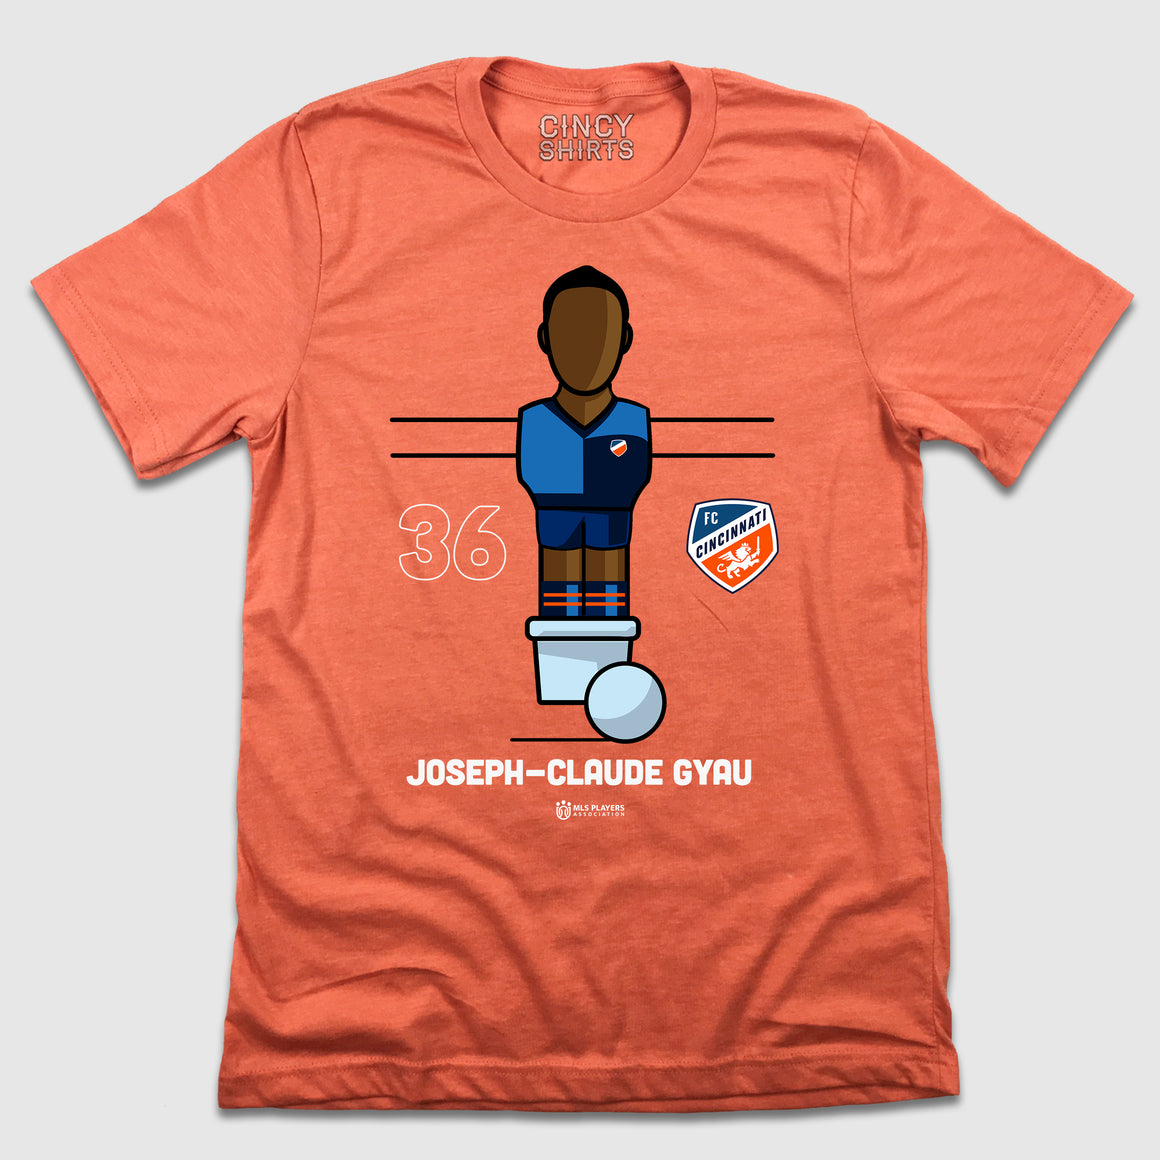 Official Joseph-Claude Gyau MLSPA Foosball Tee - Cincy Shirts